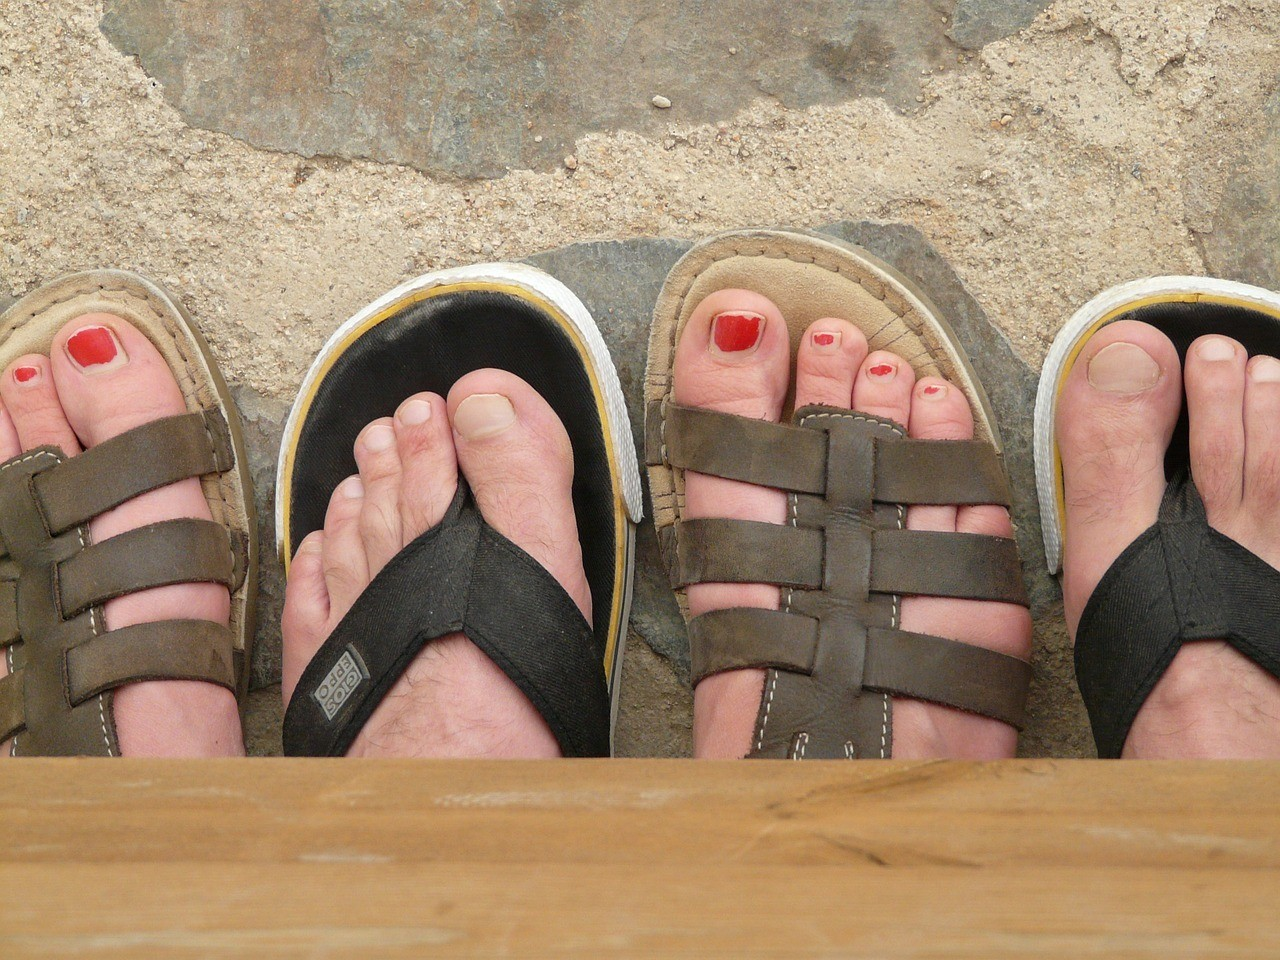 four foot comparing which foot wear the best walking sandals